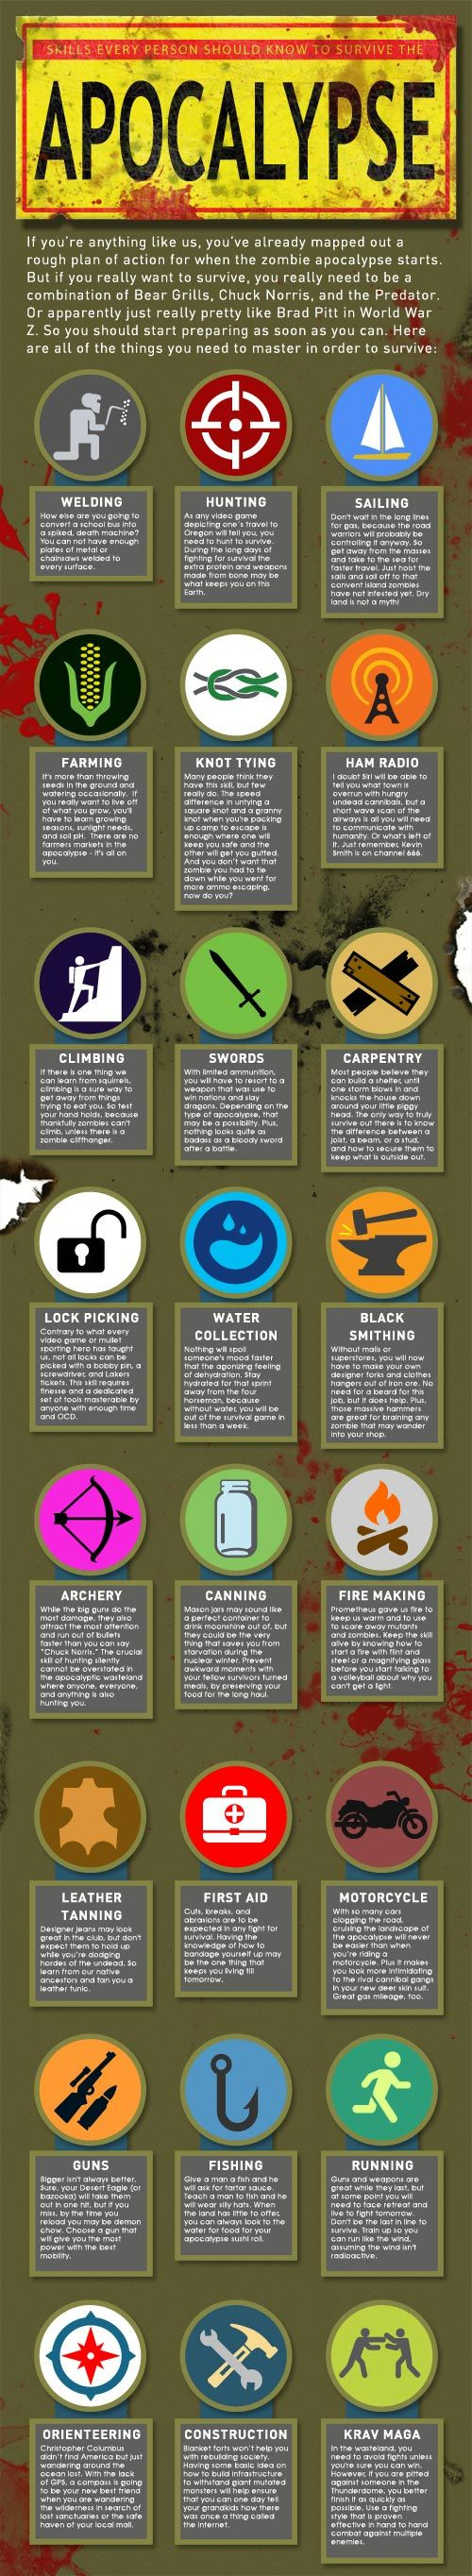 How Many of These 24 Skills Do You Have to Survive the Zombie Apocalypse? - http://freedomprepper.com/how-many-of-these-24-skills-do-you-have-to-survive-the-zombie-apocalypse/